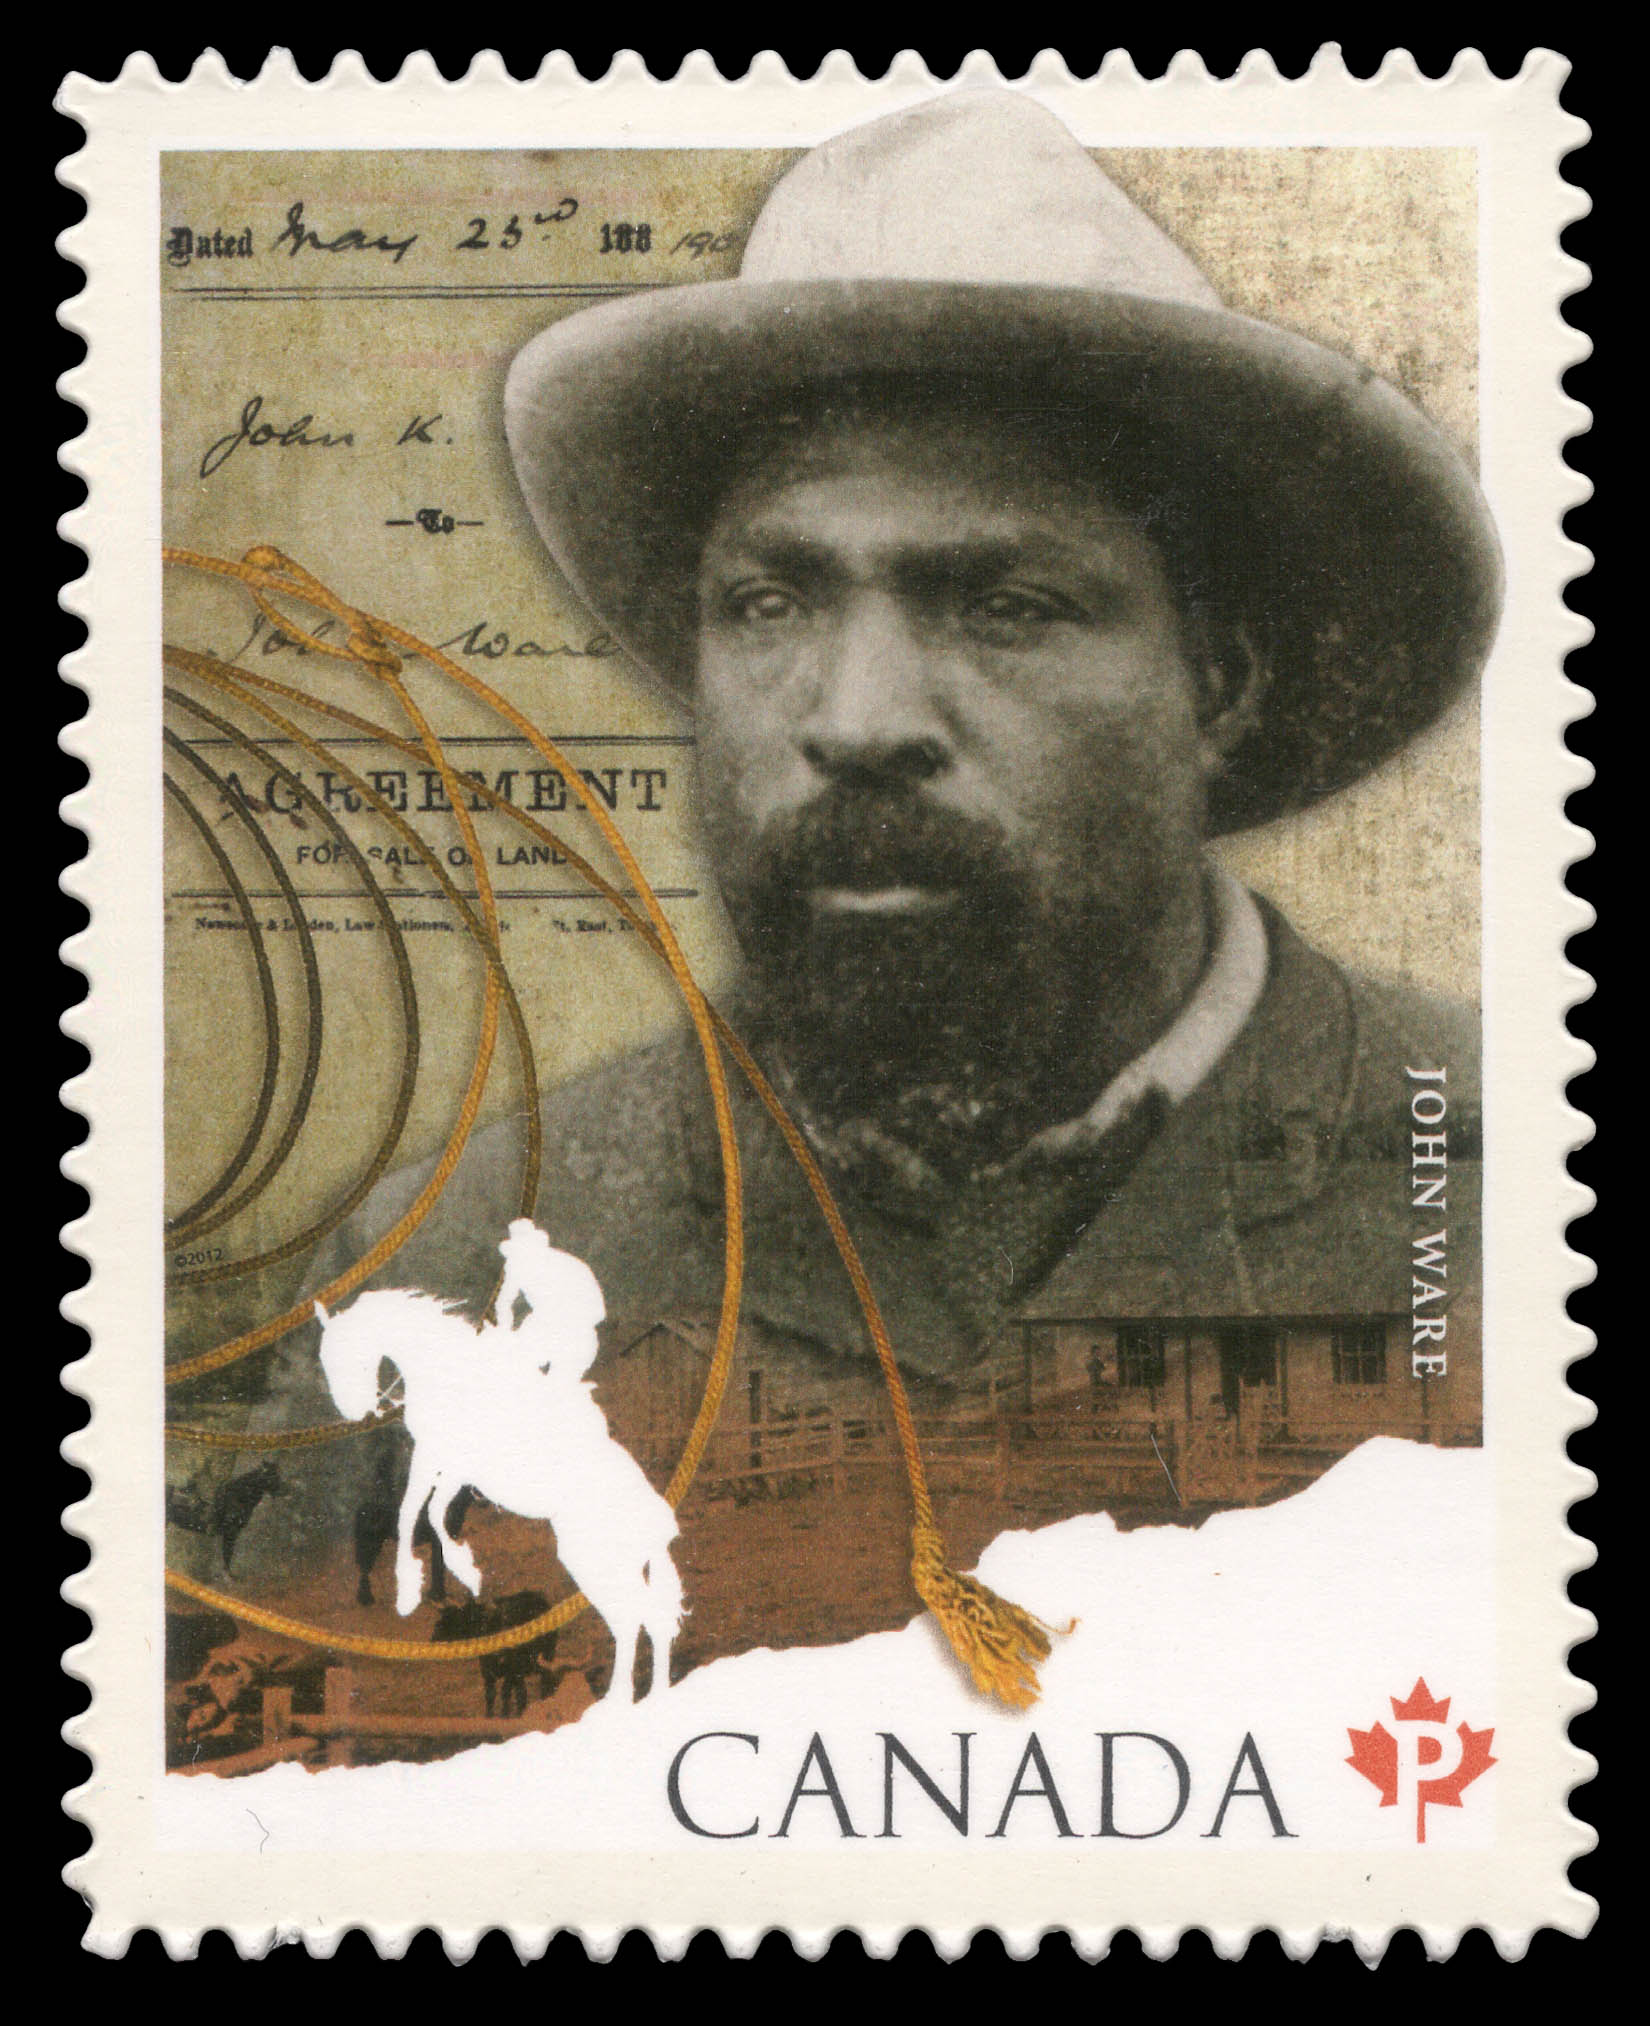 John Ware Canada Postage Stamp | Black History Month